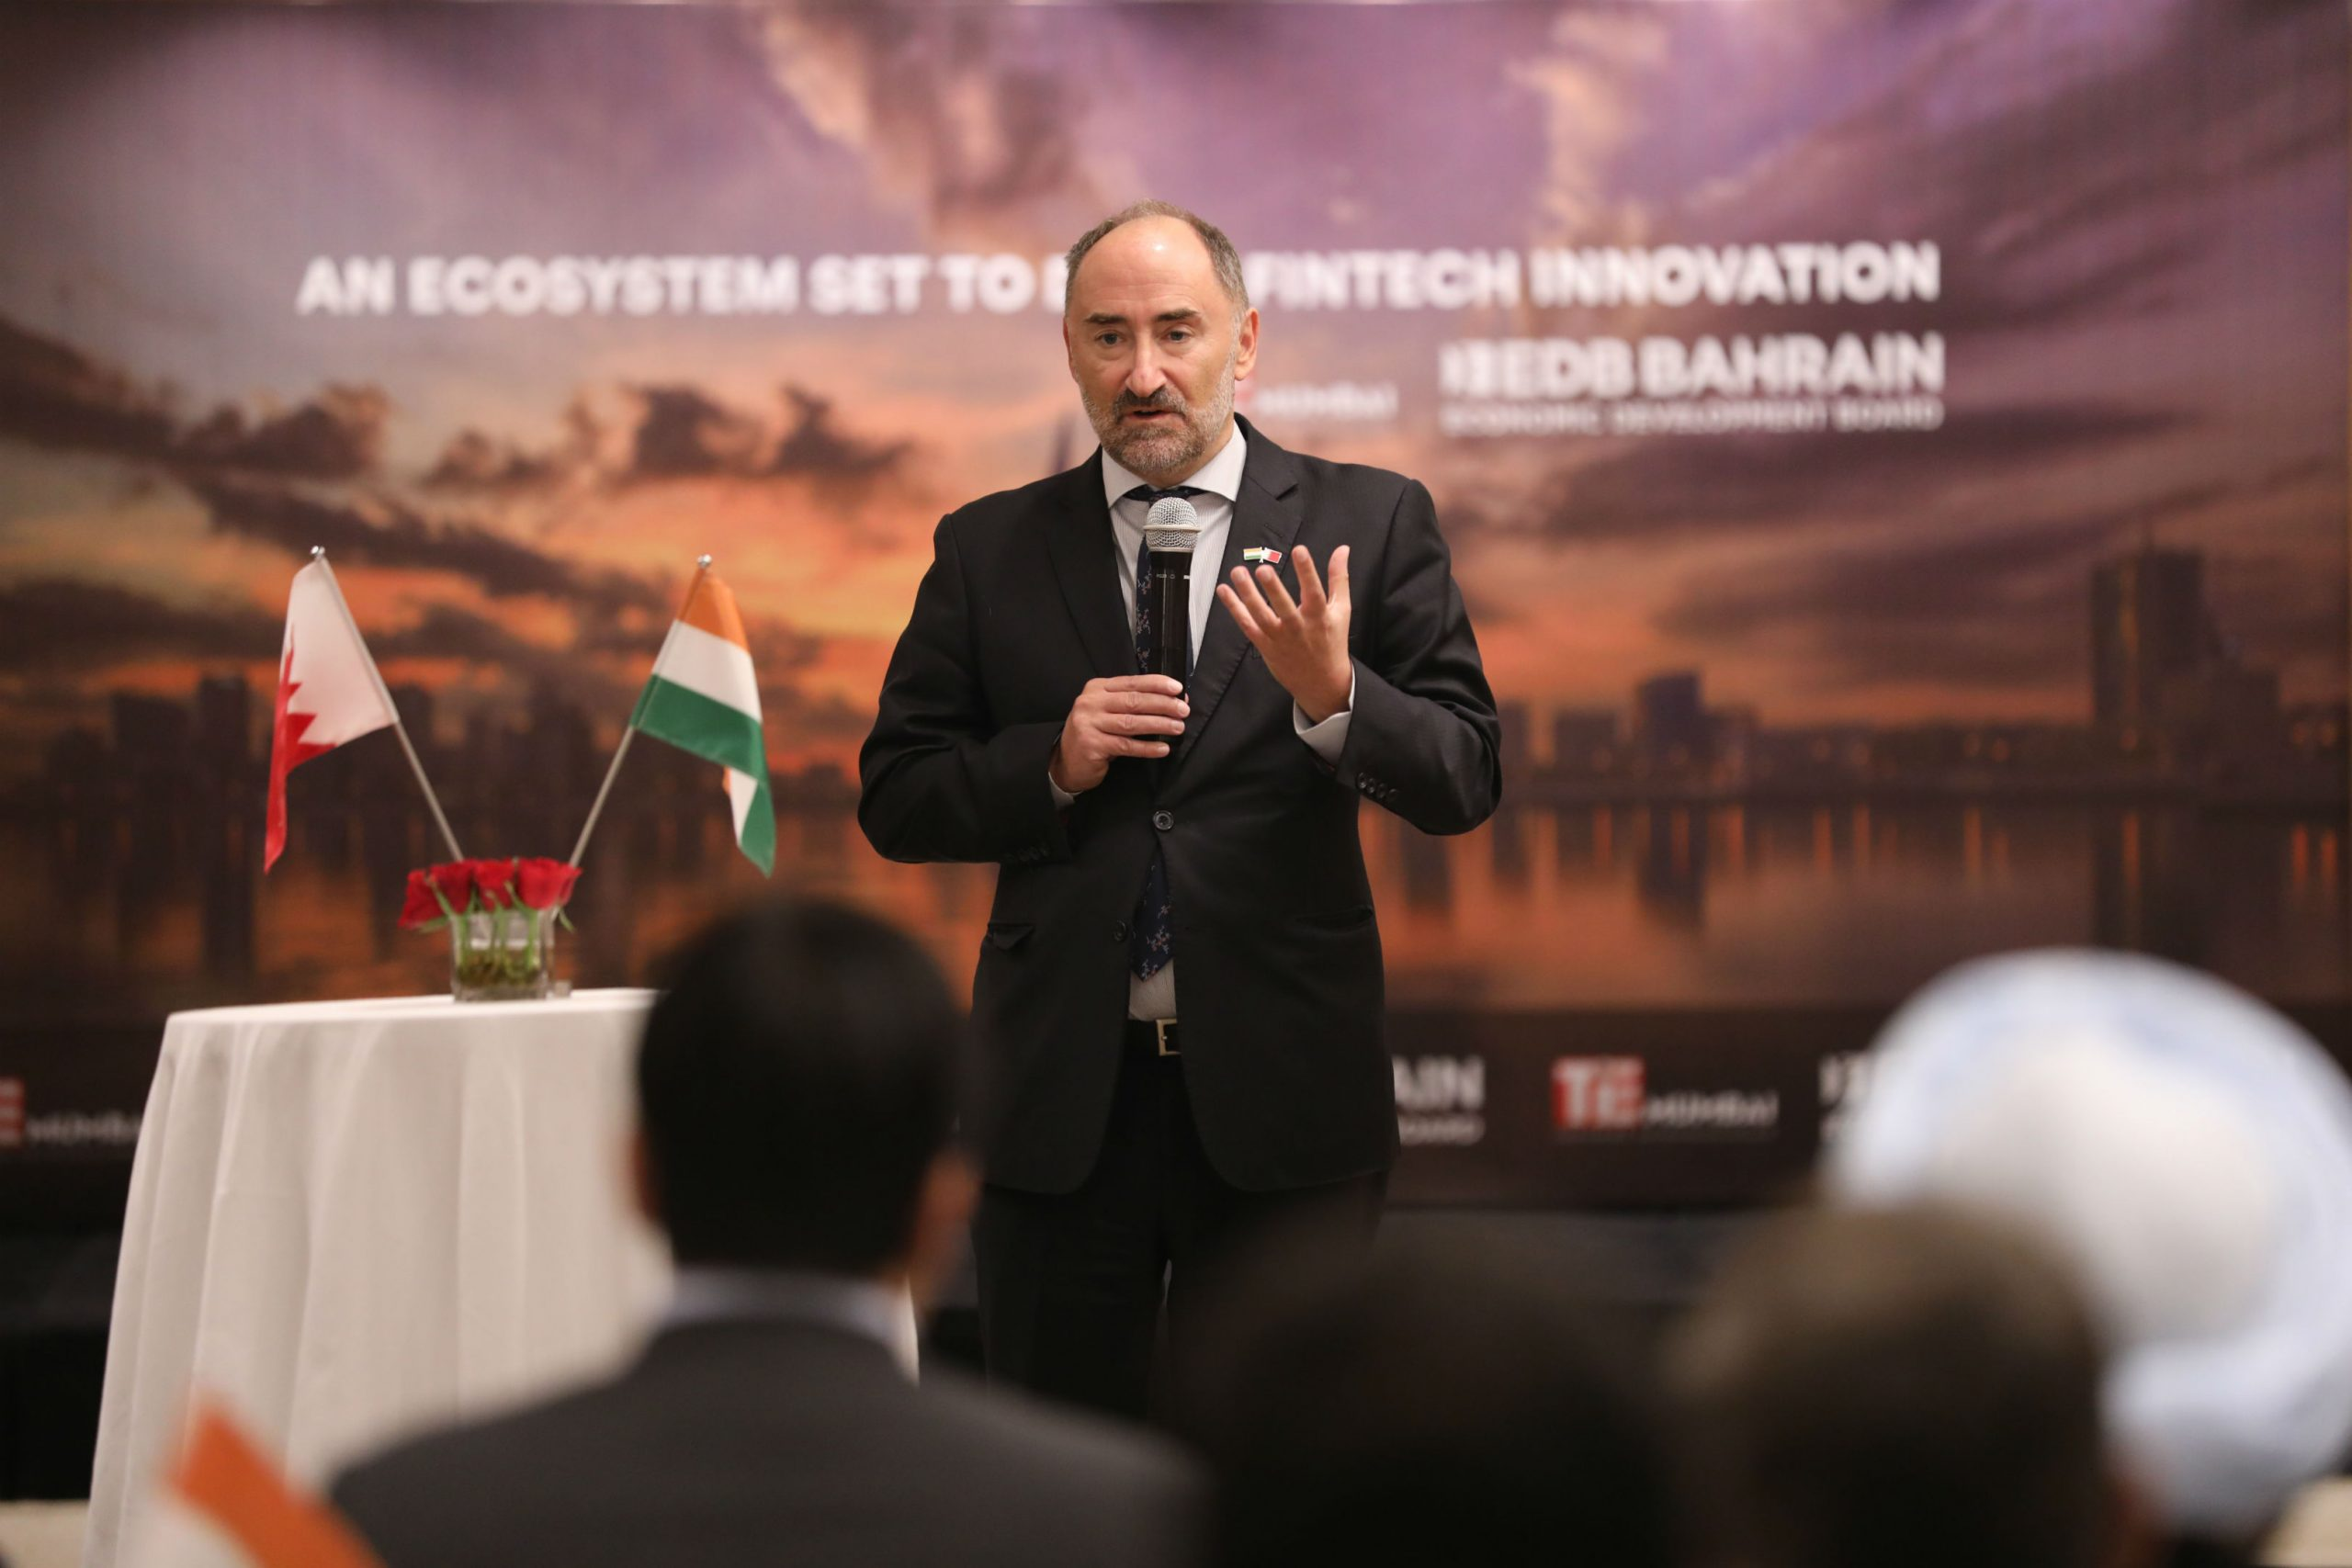 Delegation Organised a Business Forum attended by 100 Indian Investors